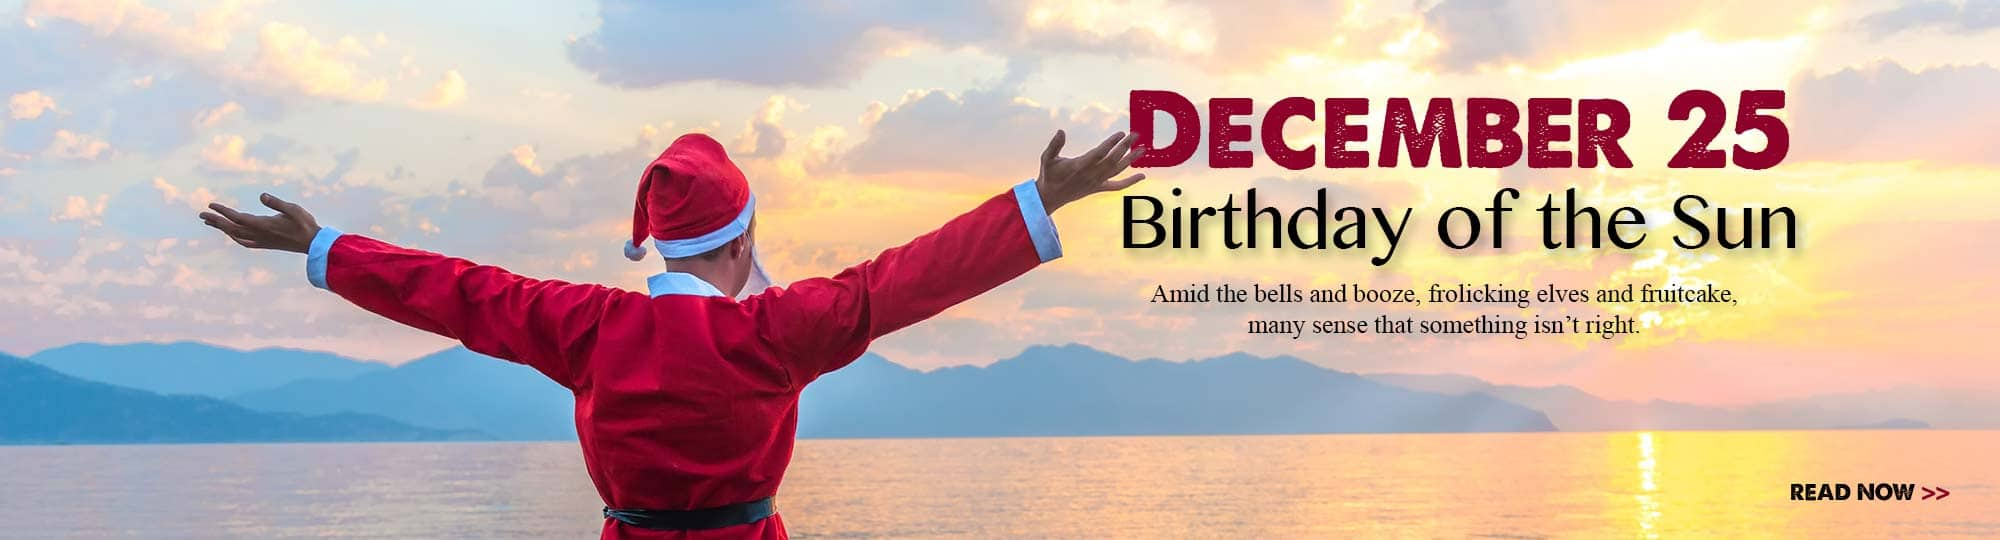 December 25 Birthday of the Sun; is christmas in the bible; where is christmas in the bible